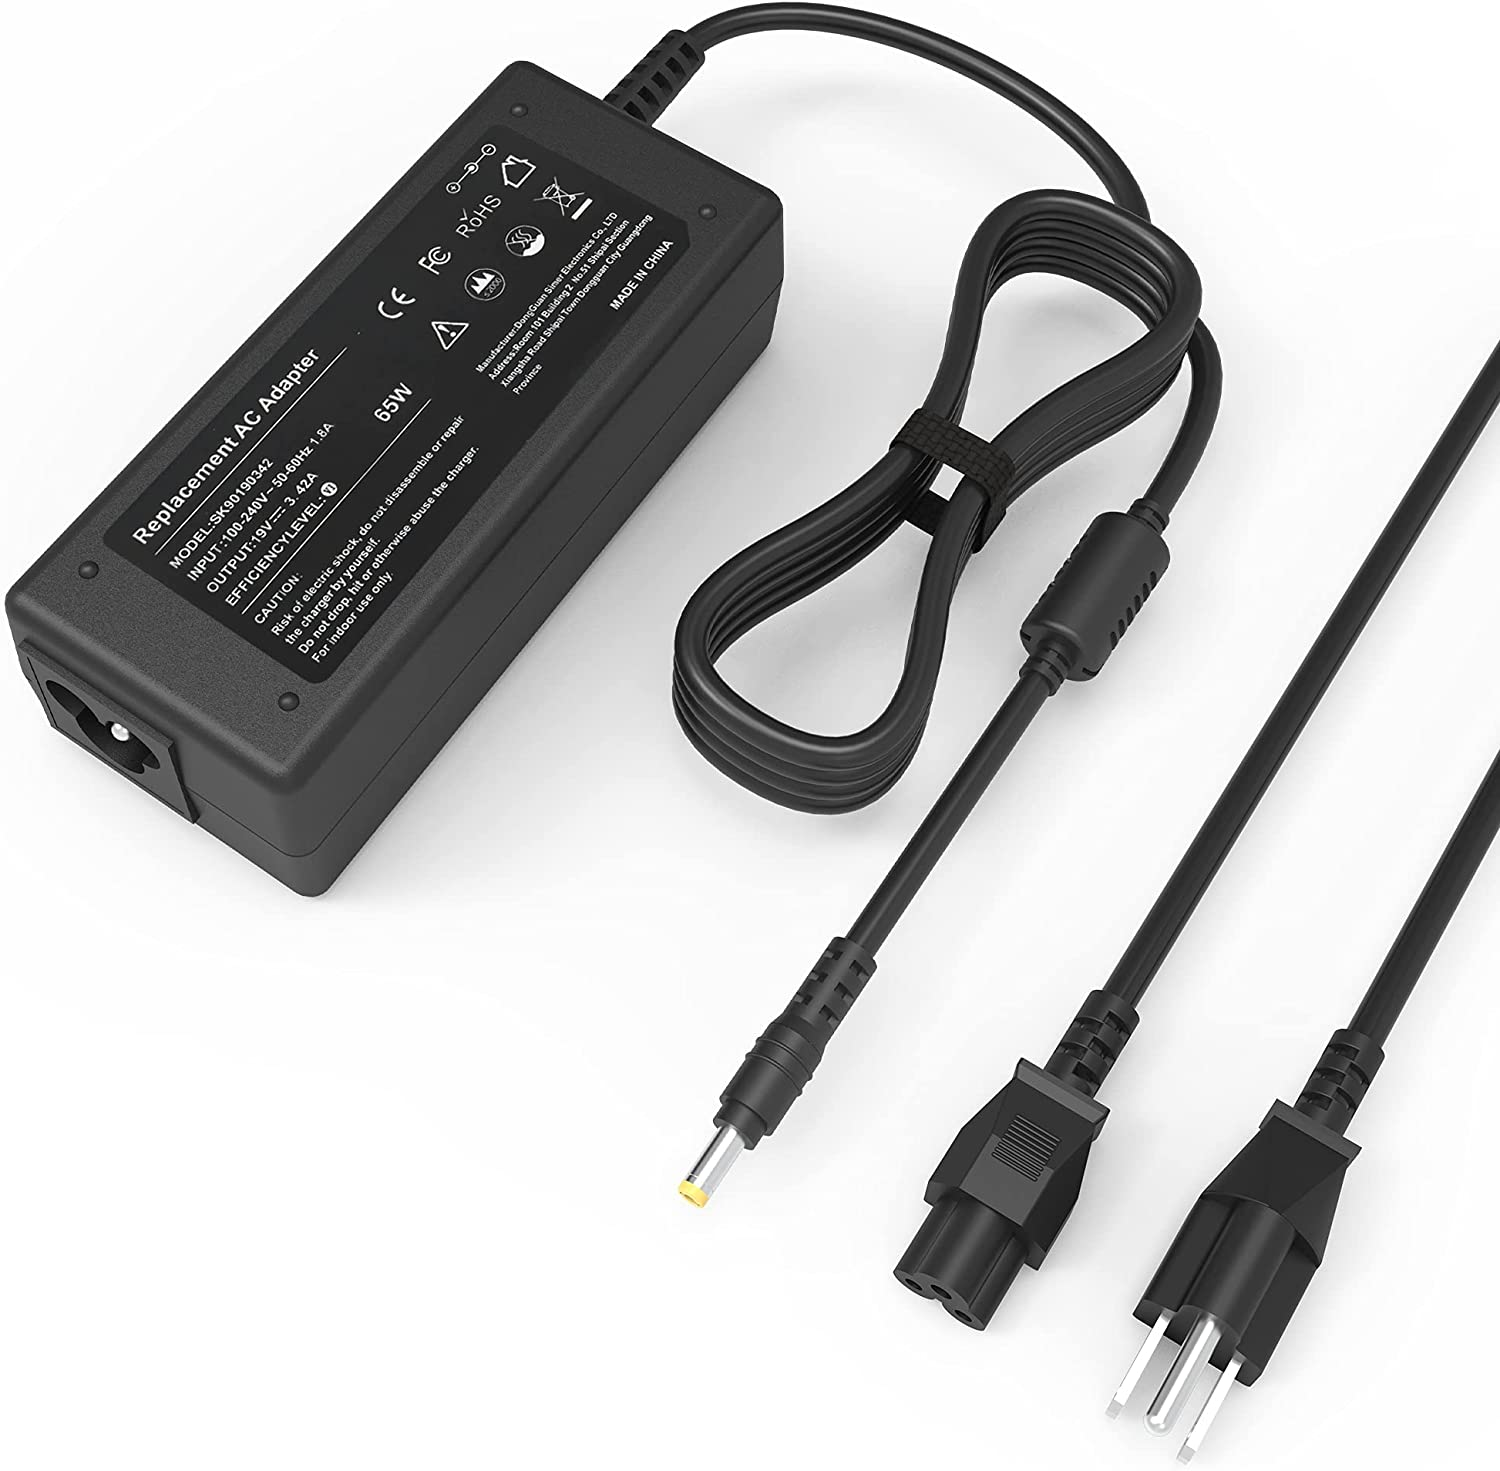 65W Laptop Charger for Acer Aspire 5253 gift 5733 Now on sale 5520 5750 7560 5517